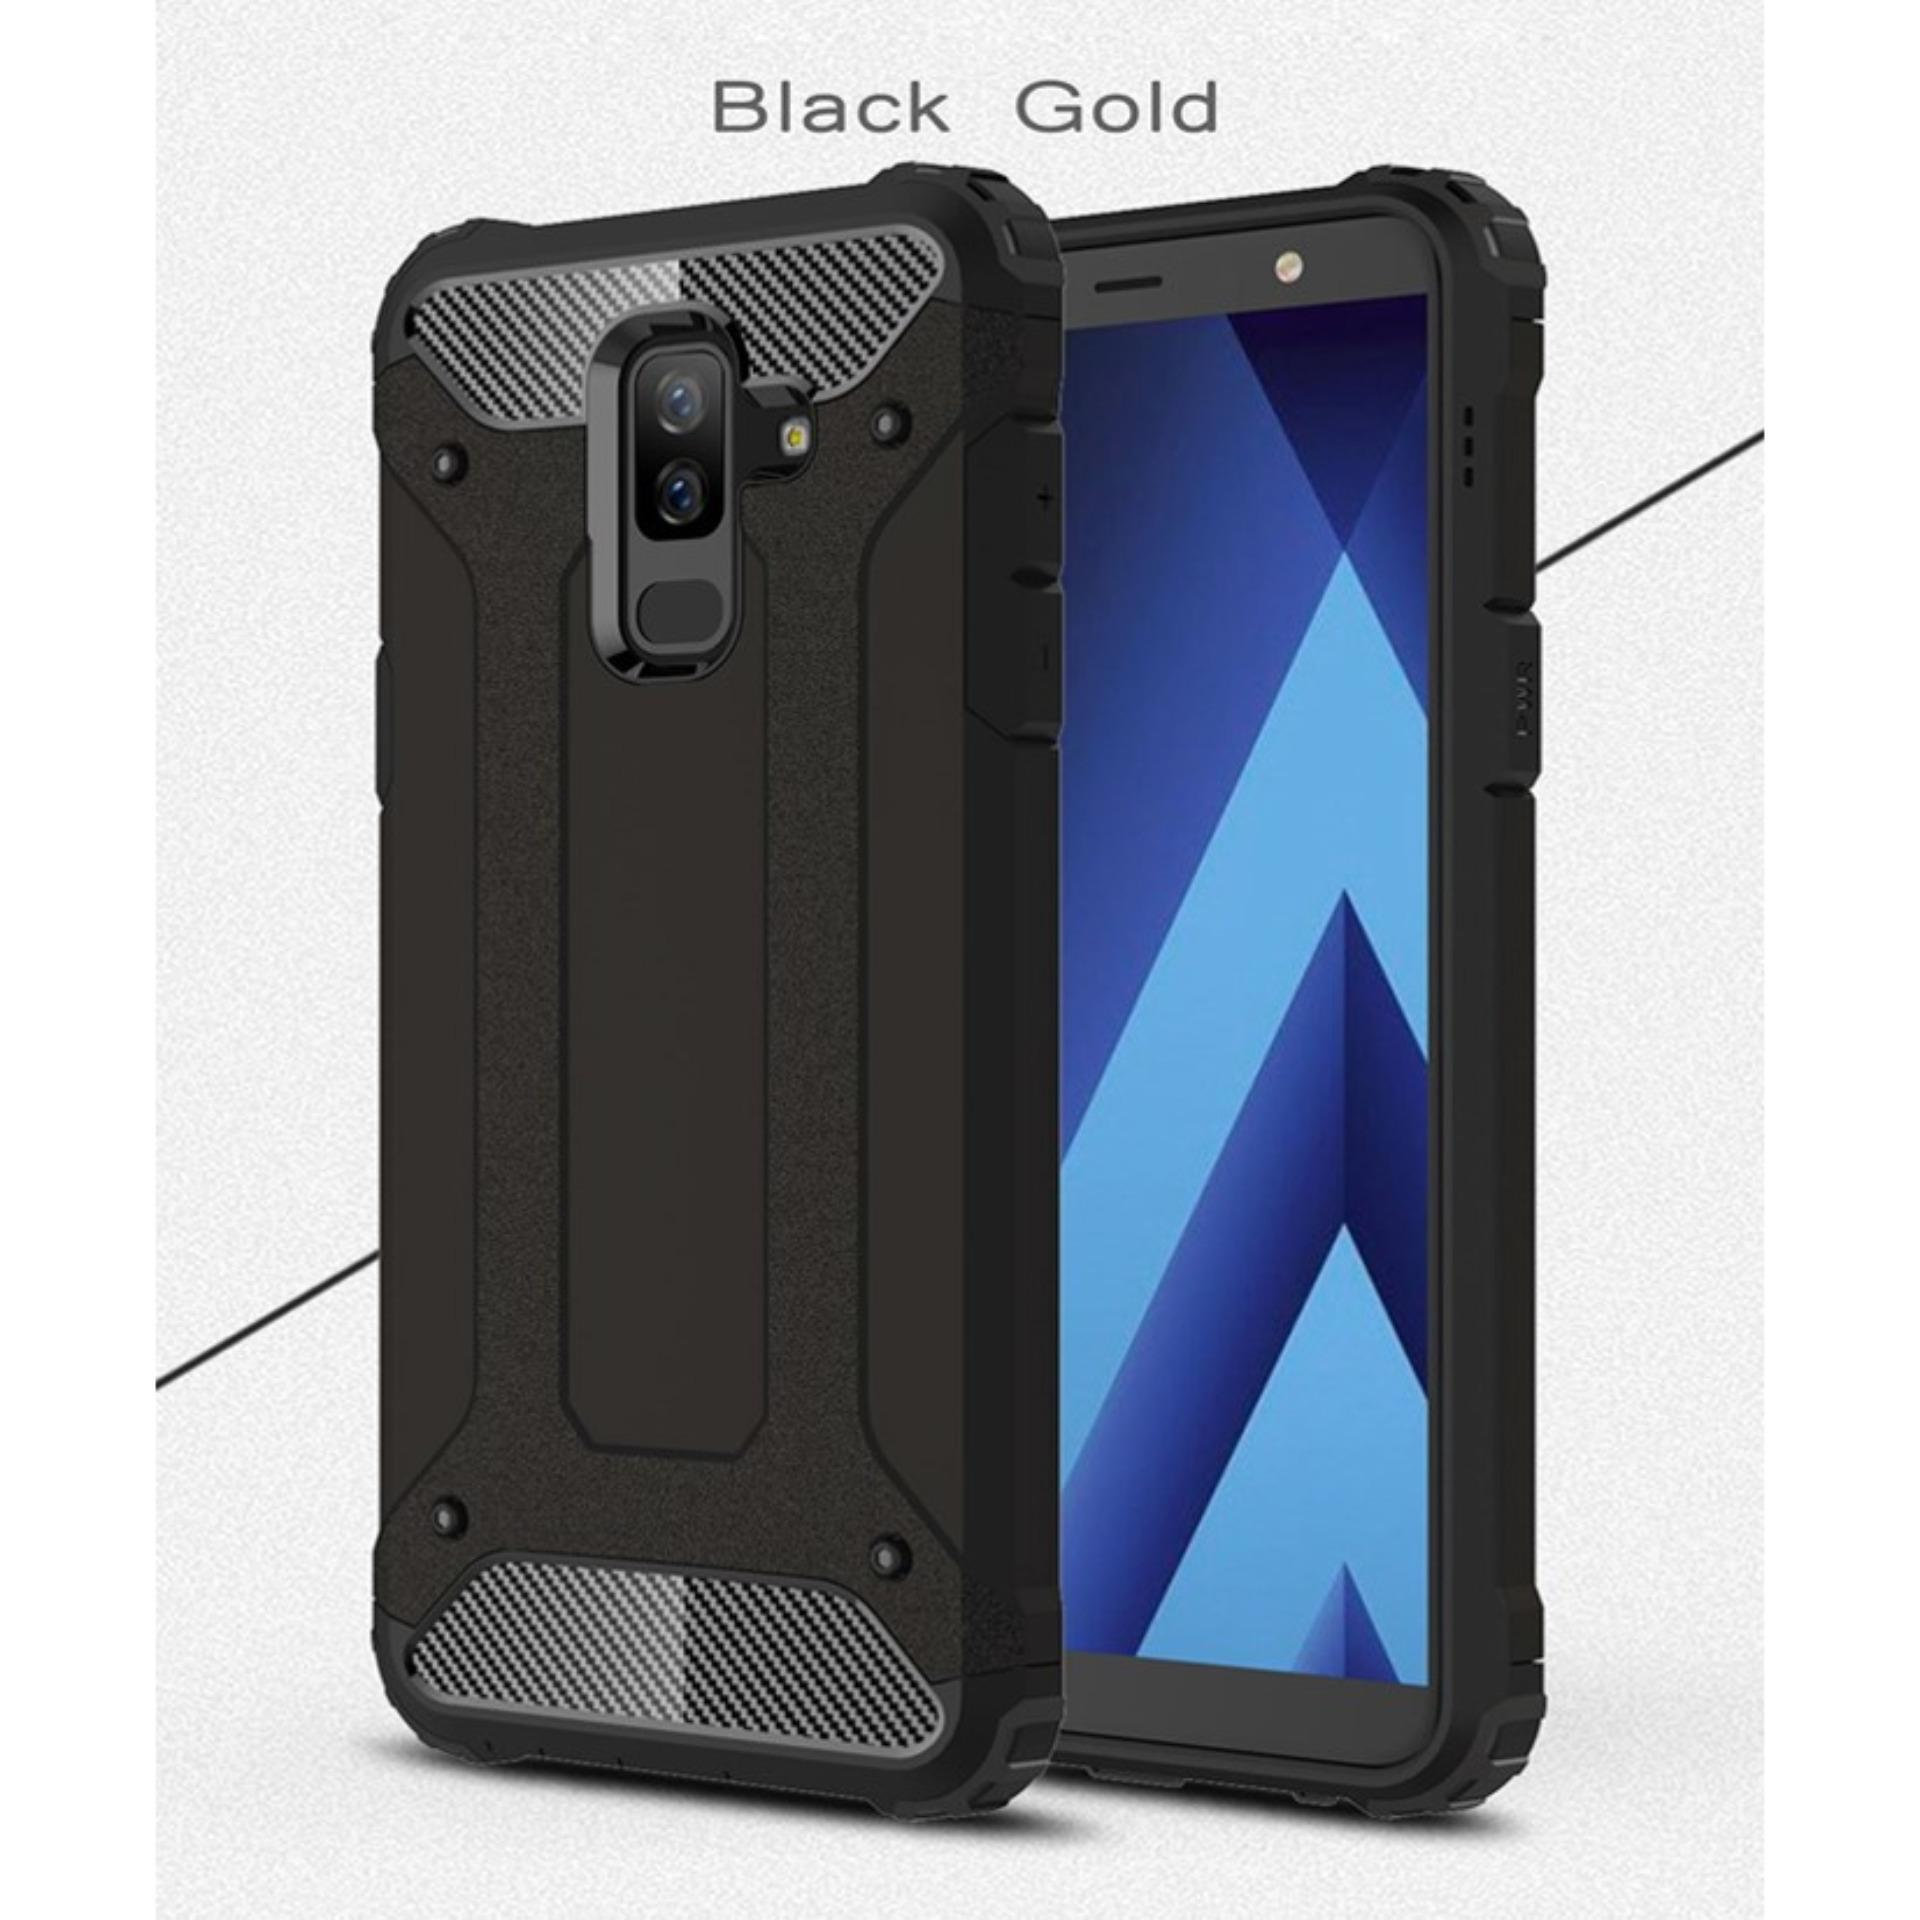 Fitur For Samsung Galaxy A6 Plus 2018 Kickstand 2 In 1 Protective